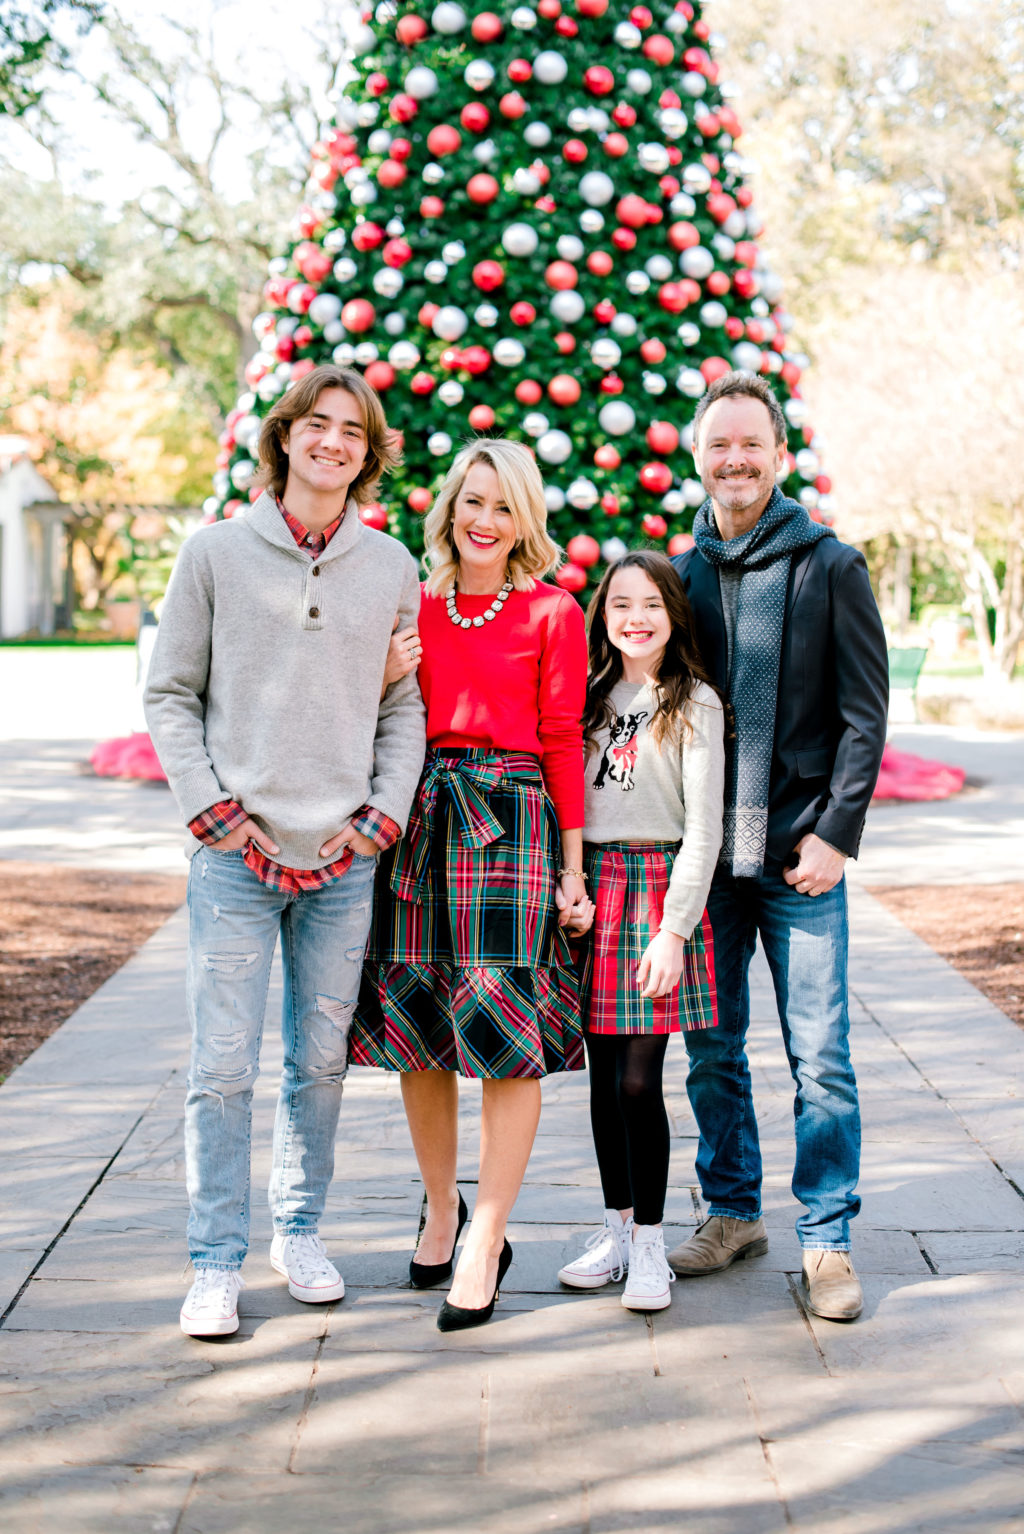 J.Crew Factory Holiday Style Plaid